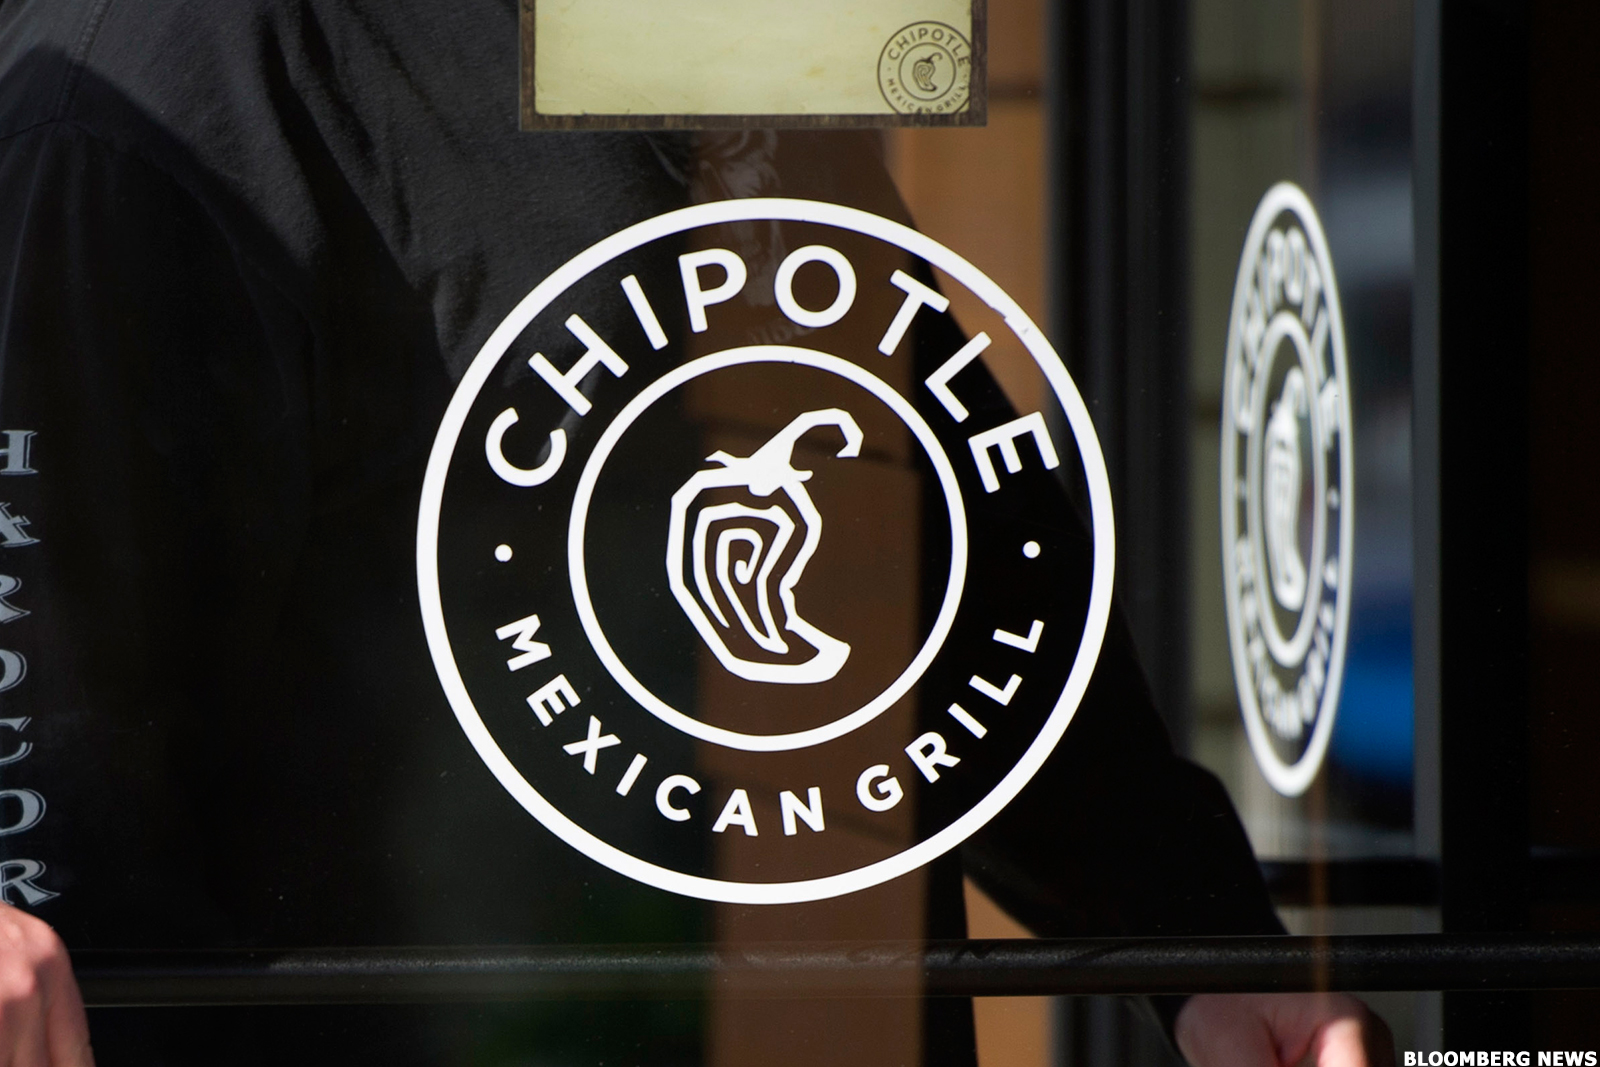 Chipotle (CMG) Stock Slides, Raymond James Downgrades - TheStreet